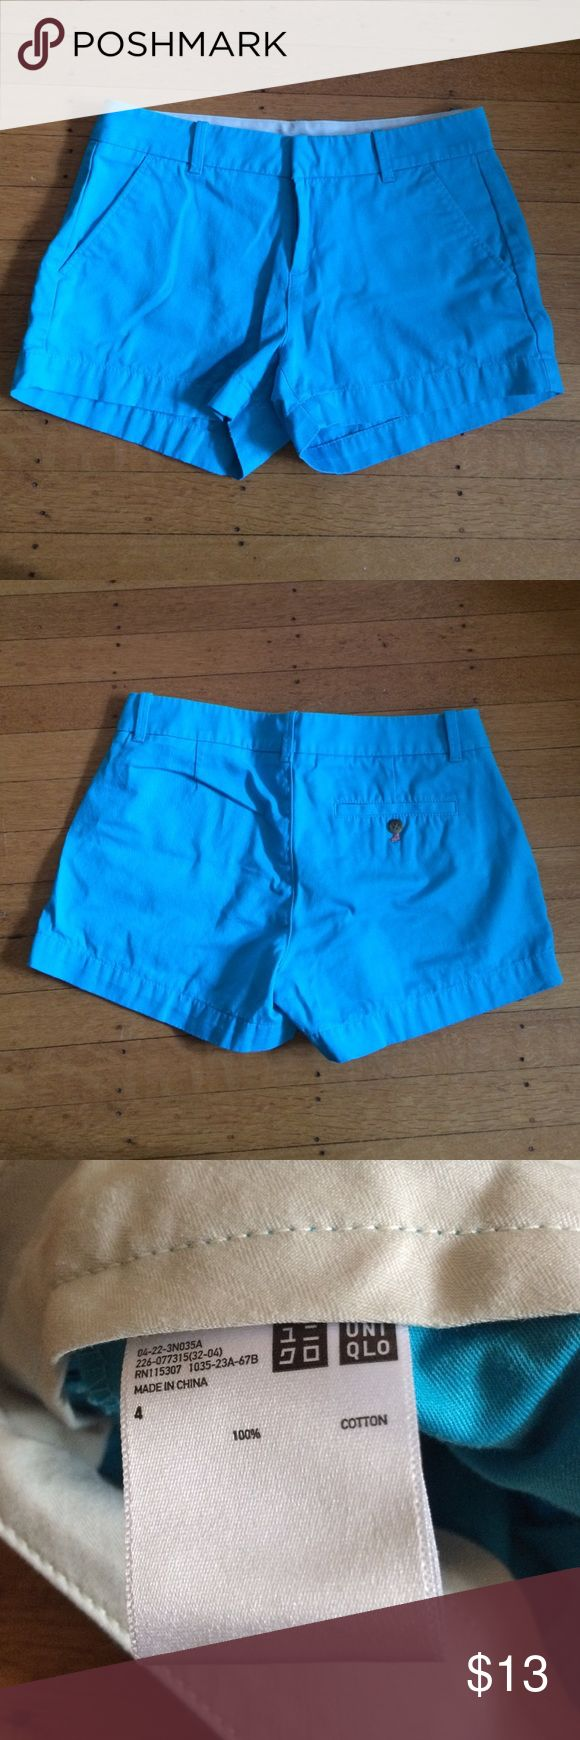 Uniqlo Cotton Shorts These electric blue shorts have deep pockets as well as a smaller pocket on the back. They have been worn once. Uniqlo Shorts